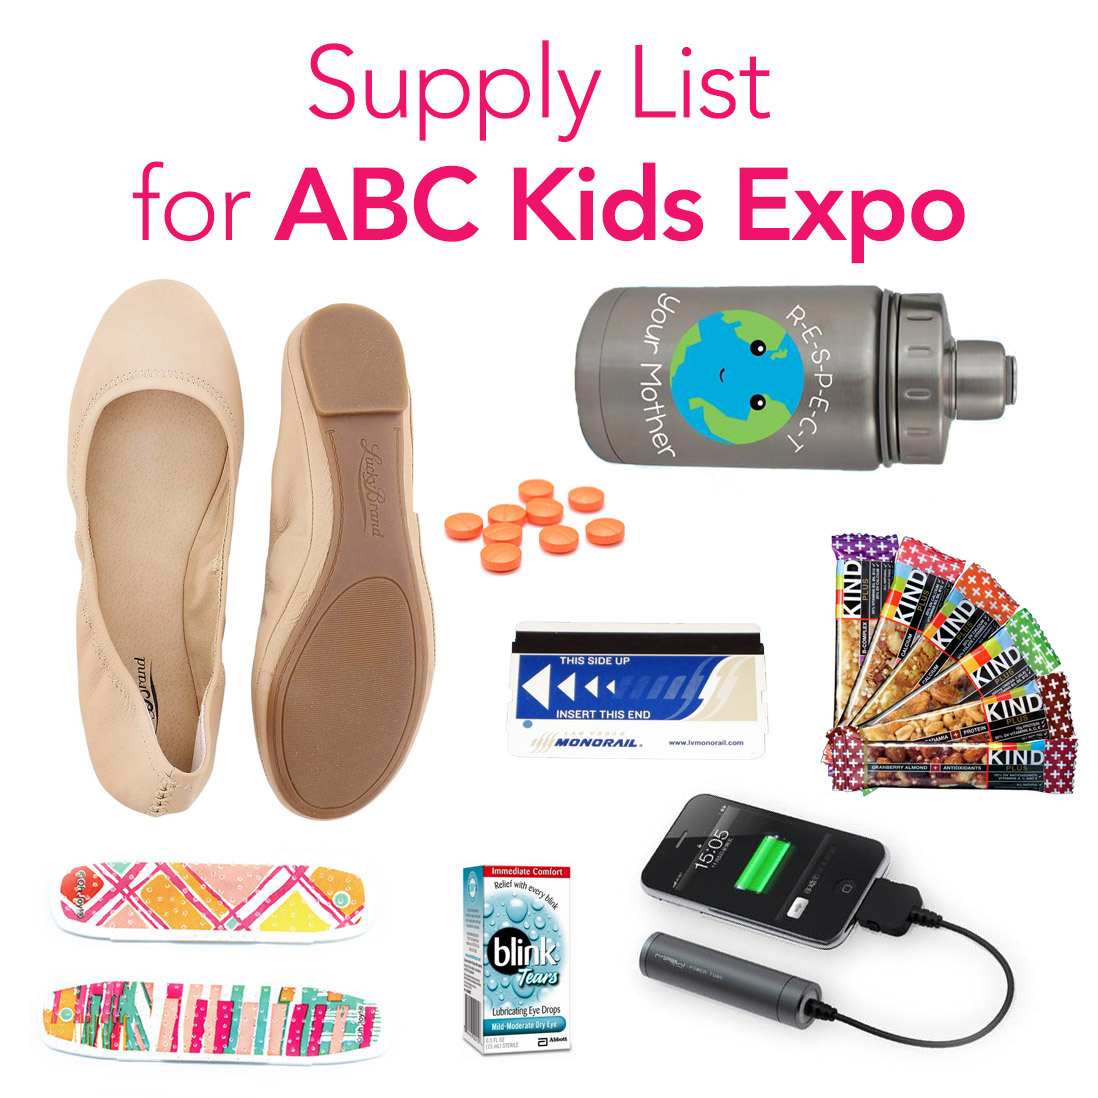 ABC Kids Expo survival list